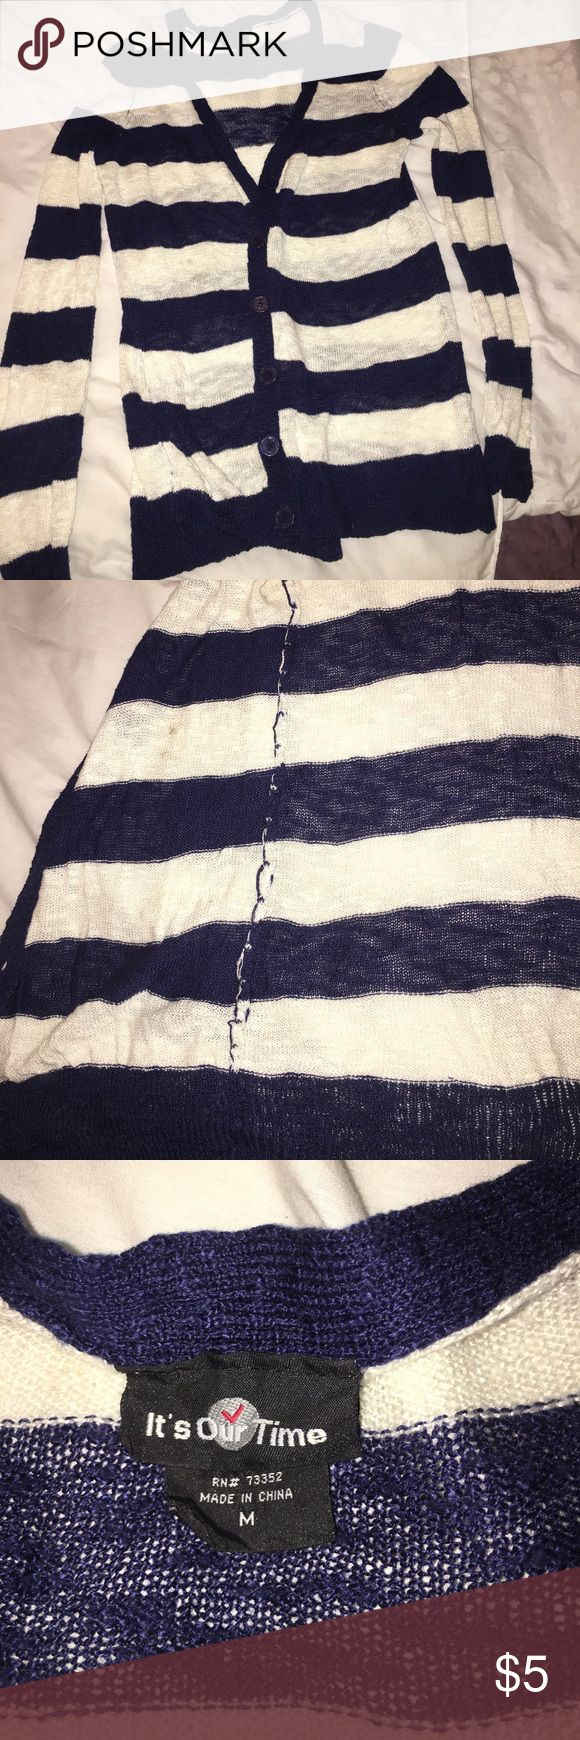 Blue and white cardigan Lightly used but has a stain inside cardigan its our time Sweaters Cardigans